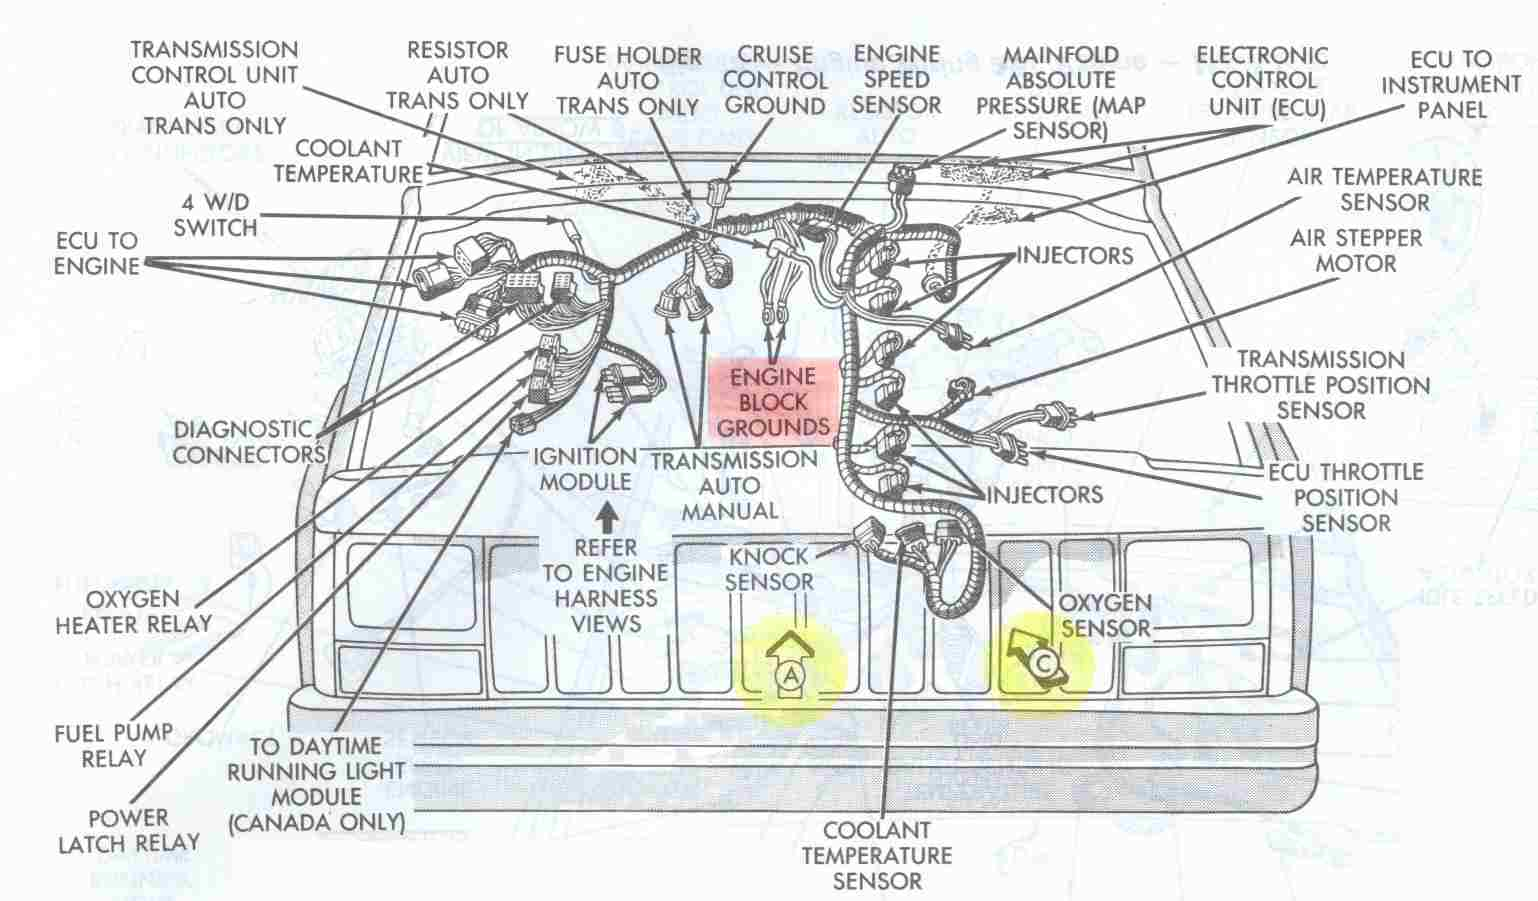 Electrical_Engine_Ground_Points_Overview jeep cherokee electrical diagnosing erratic behavior of engine 2002 jeep grand cherokee wiring harness at aneh.co